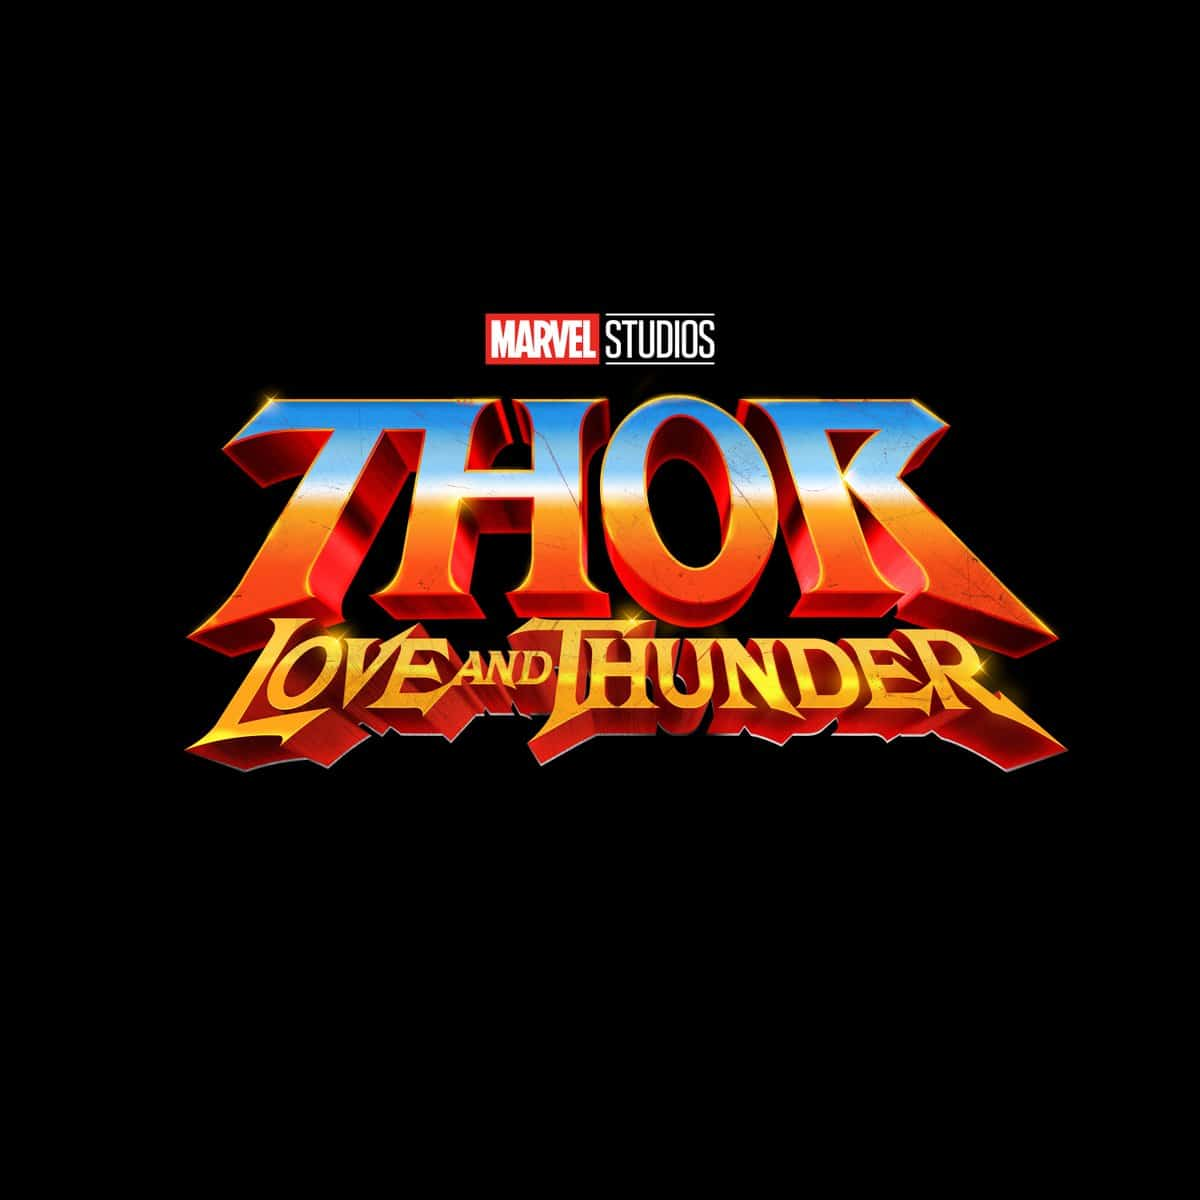 Phase 4 for MCU Timeline includes new Thor movie.